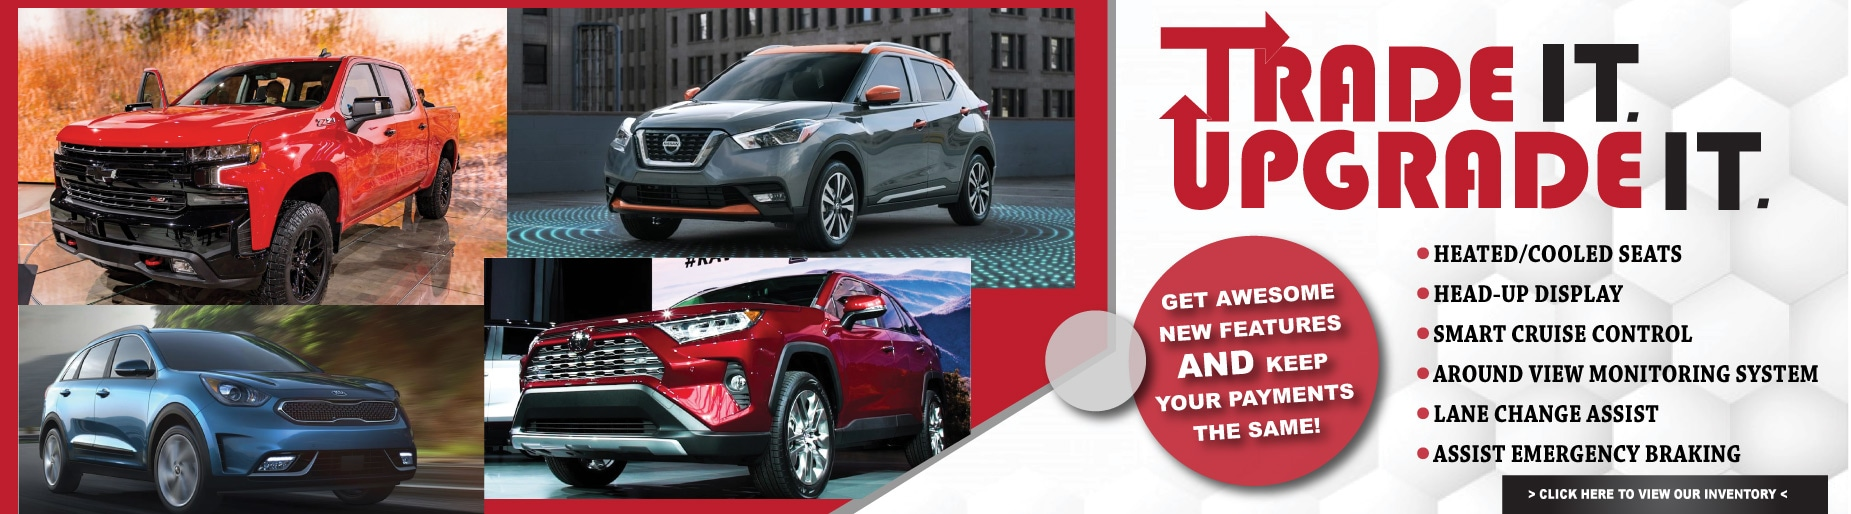 Nissan Dealership In Md >> Bayside Auto Group New Kia Toyota Chevrolet Nissan Dealership